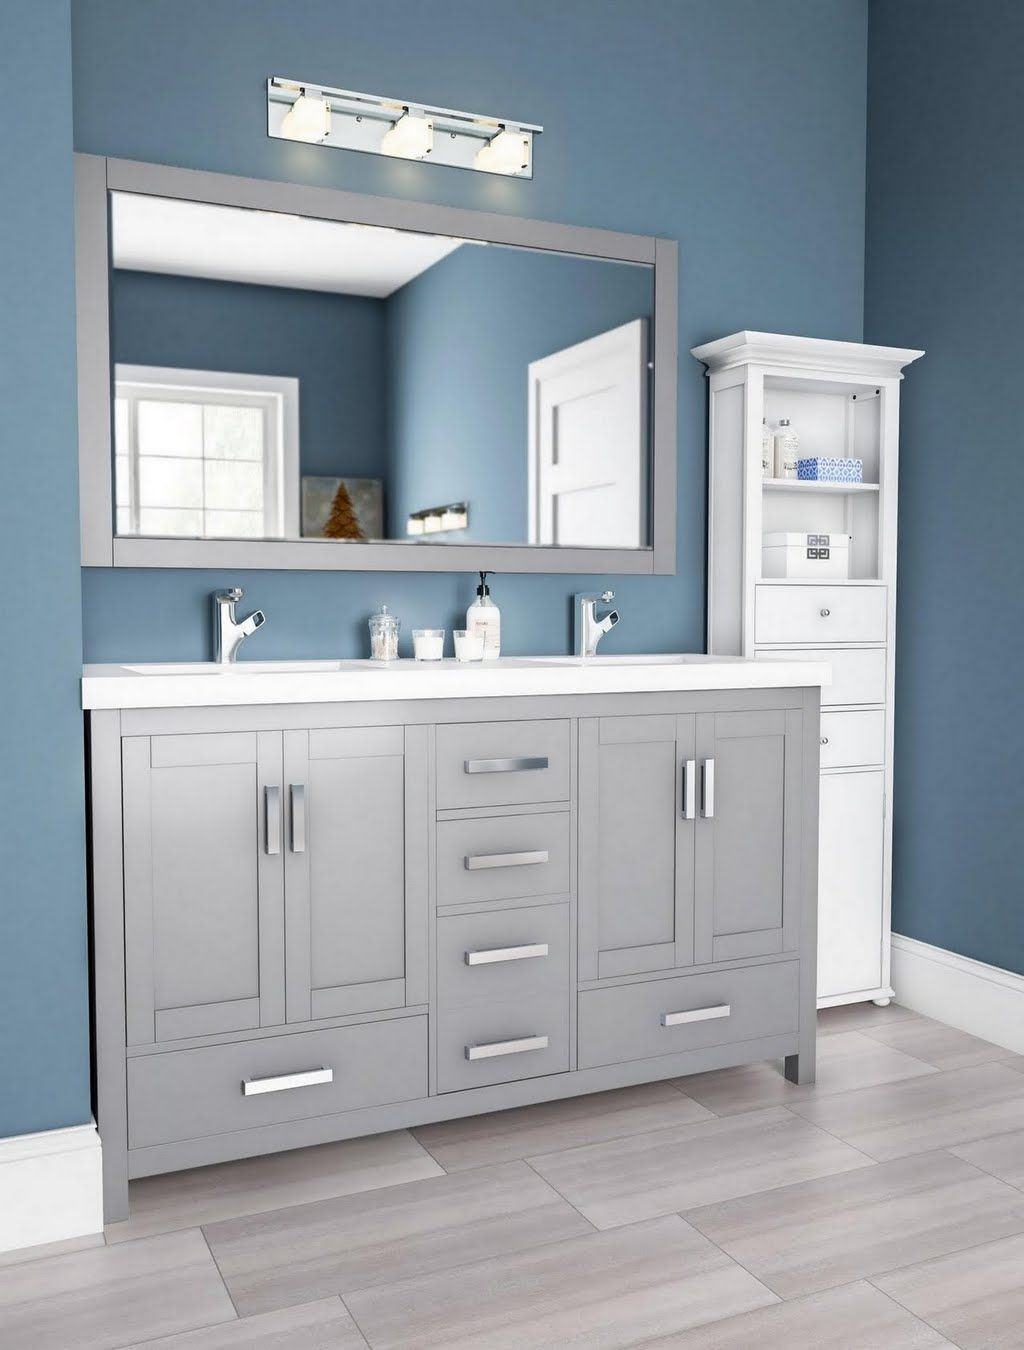 Shop Our Bathroom Department To Customize Your Sleek Gray And Blue